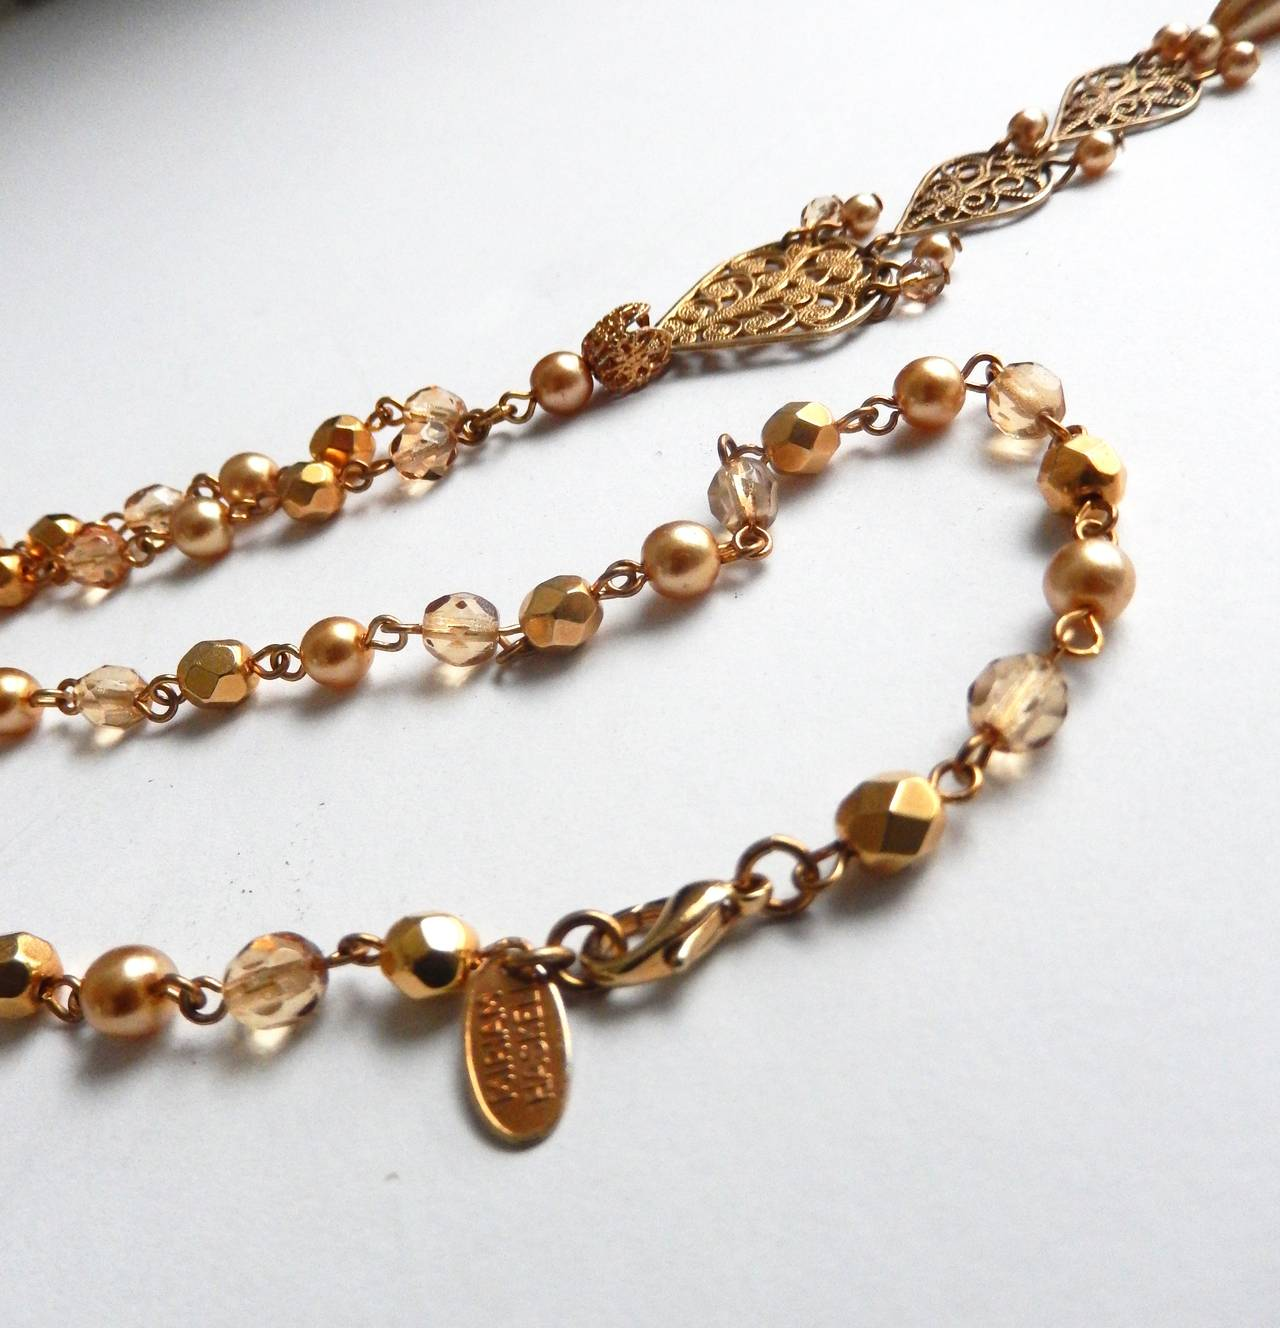 1970s Miriam Haskell Faceted Bead and Pearl Necklace with Pendant For Sale 1